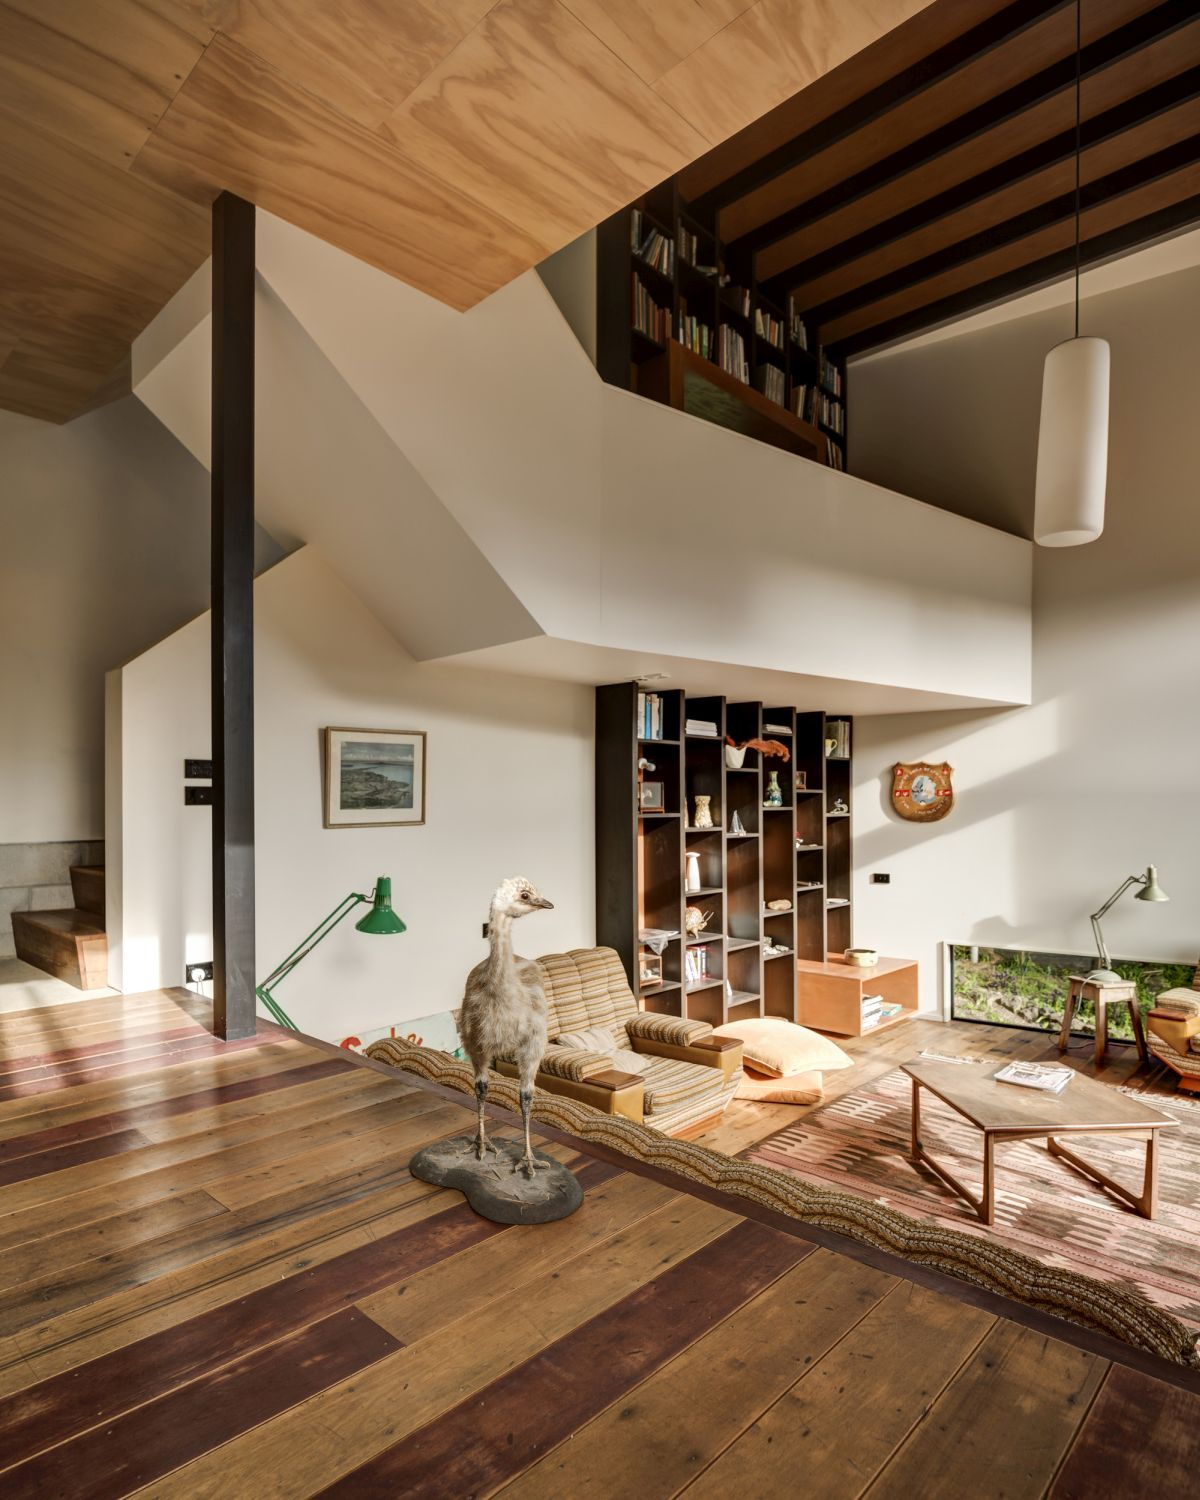 The double-height living room feels very cozy and has a welcoming look